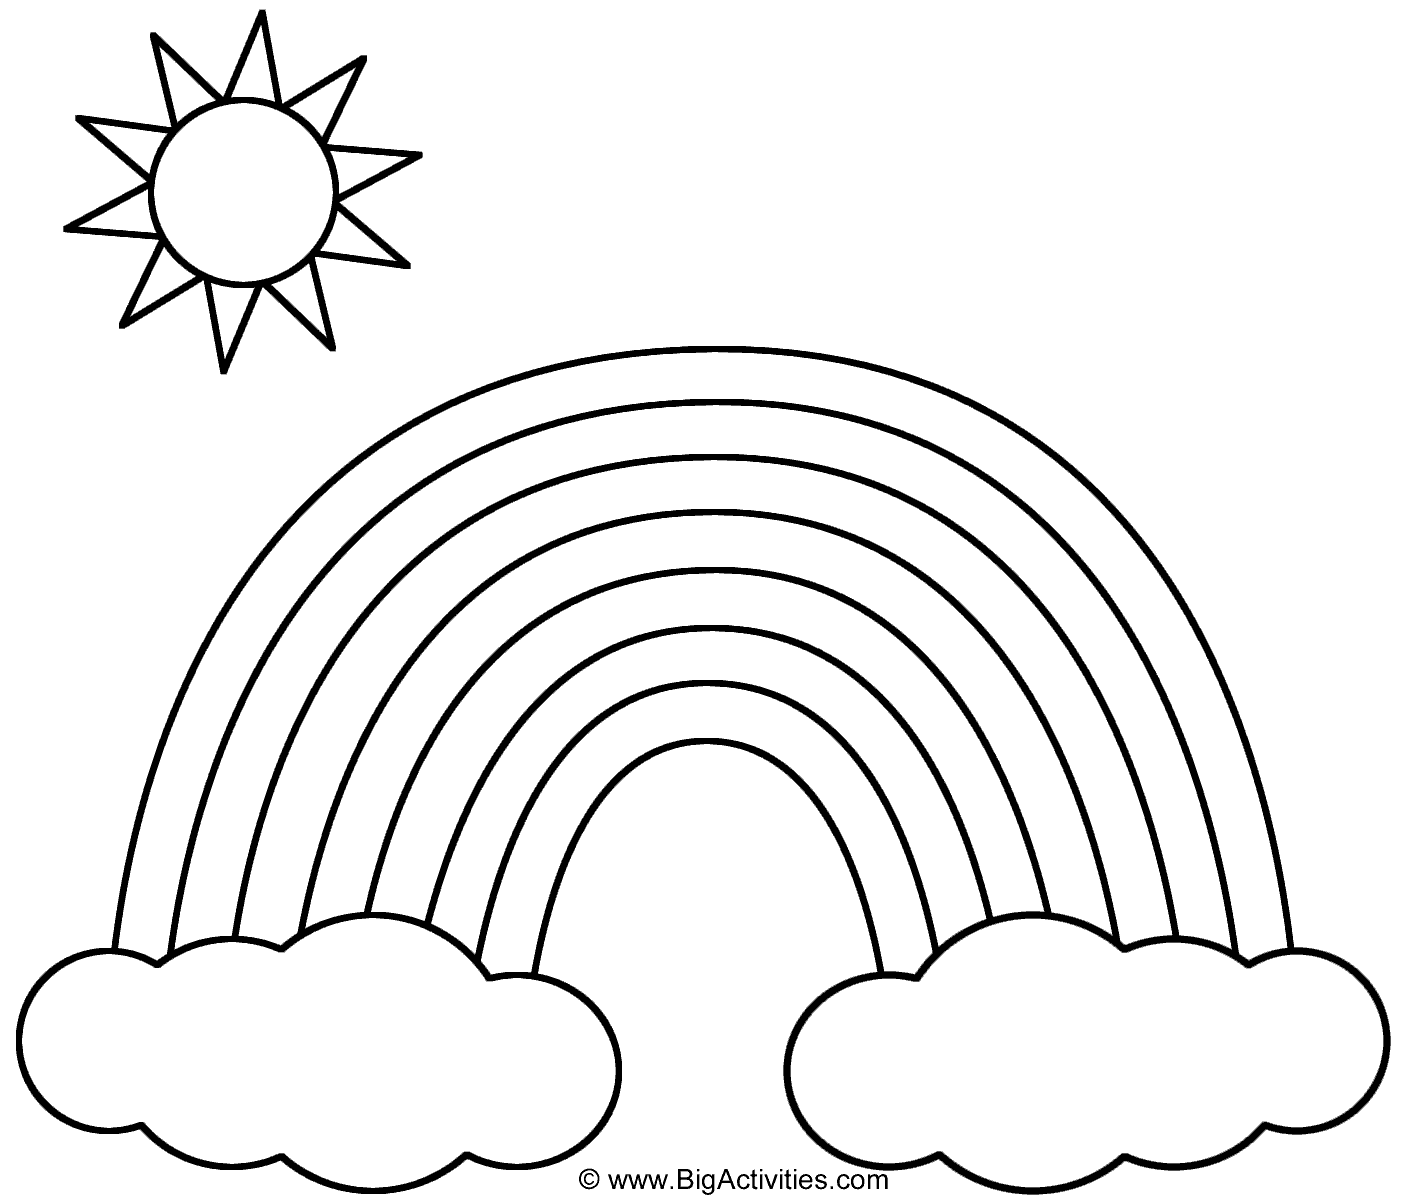 Rainbow Coloring Book Page Looking For The Nice Rainbow Coloring Page Find Here Coloring Pages For Kids Coloring Pages To Print Free Coloring Pages